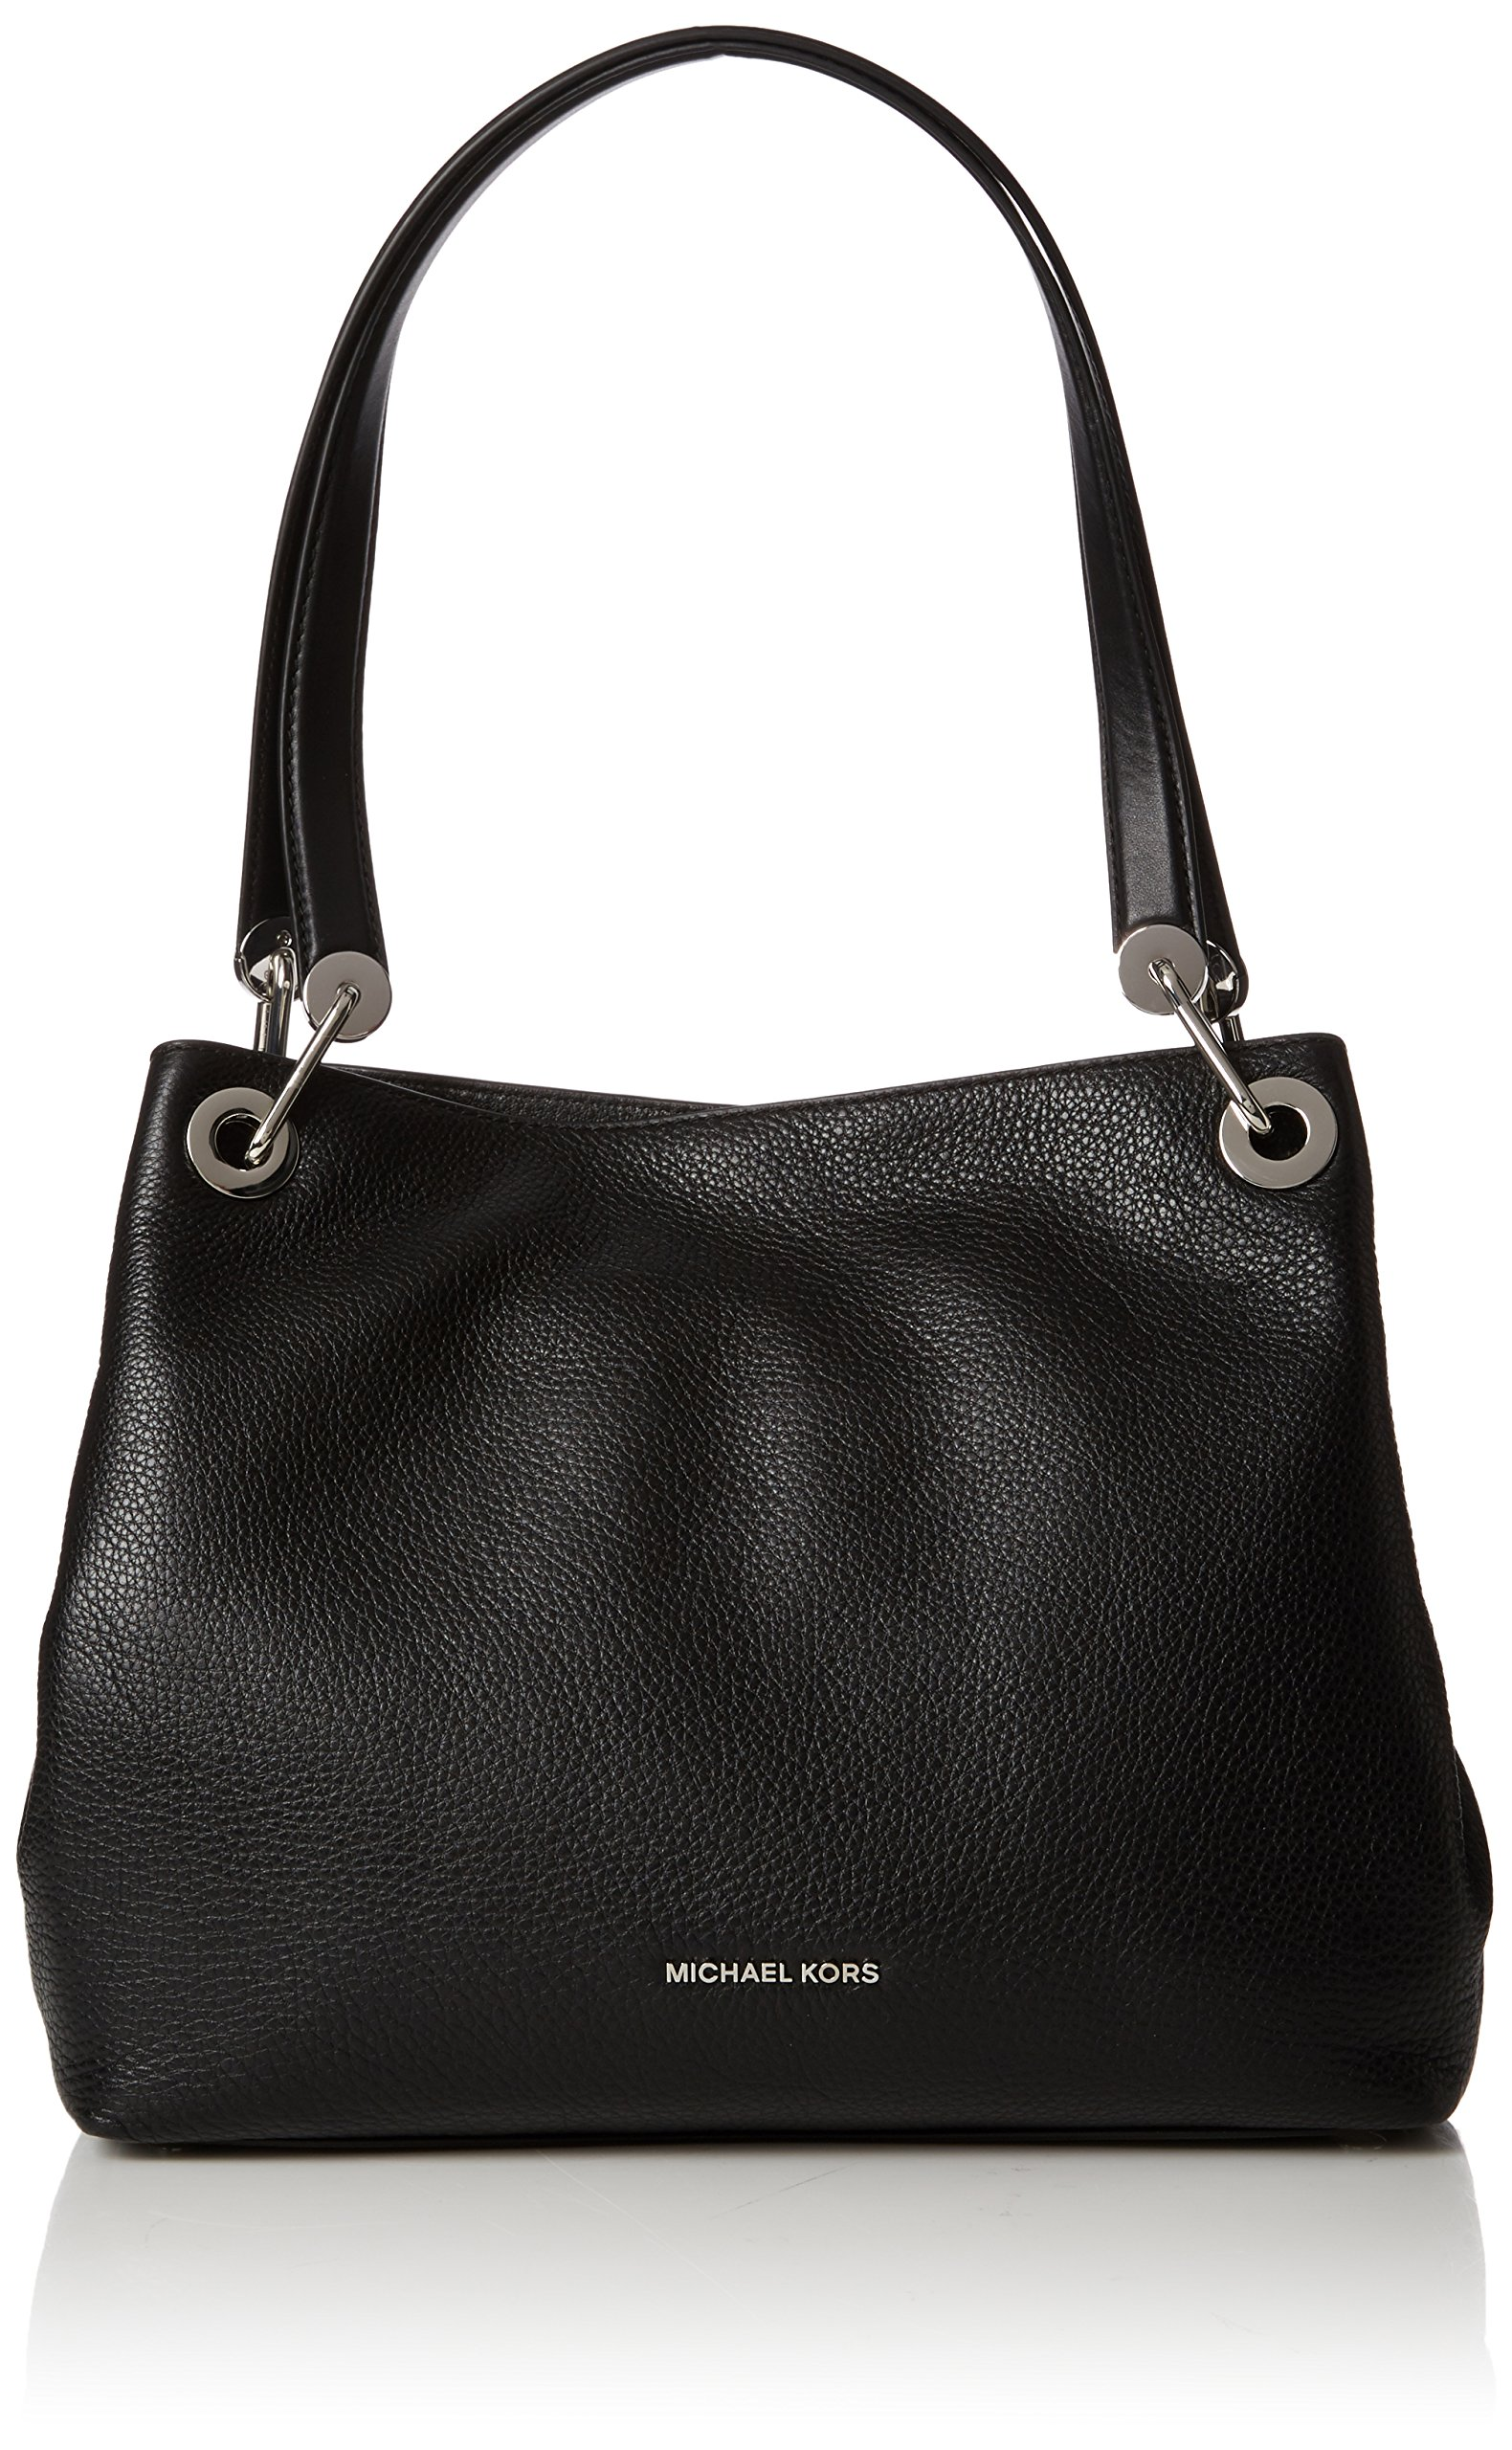 Michael Kors Raven Lg Shoulder Tote - Black, Silver Hardware